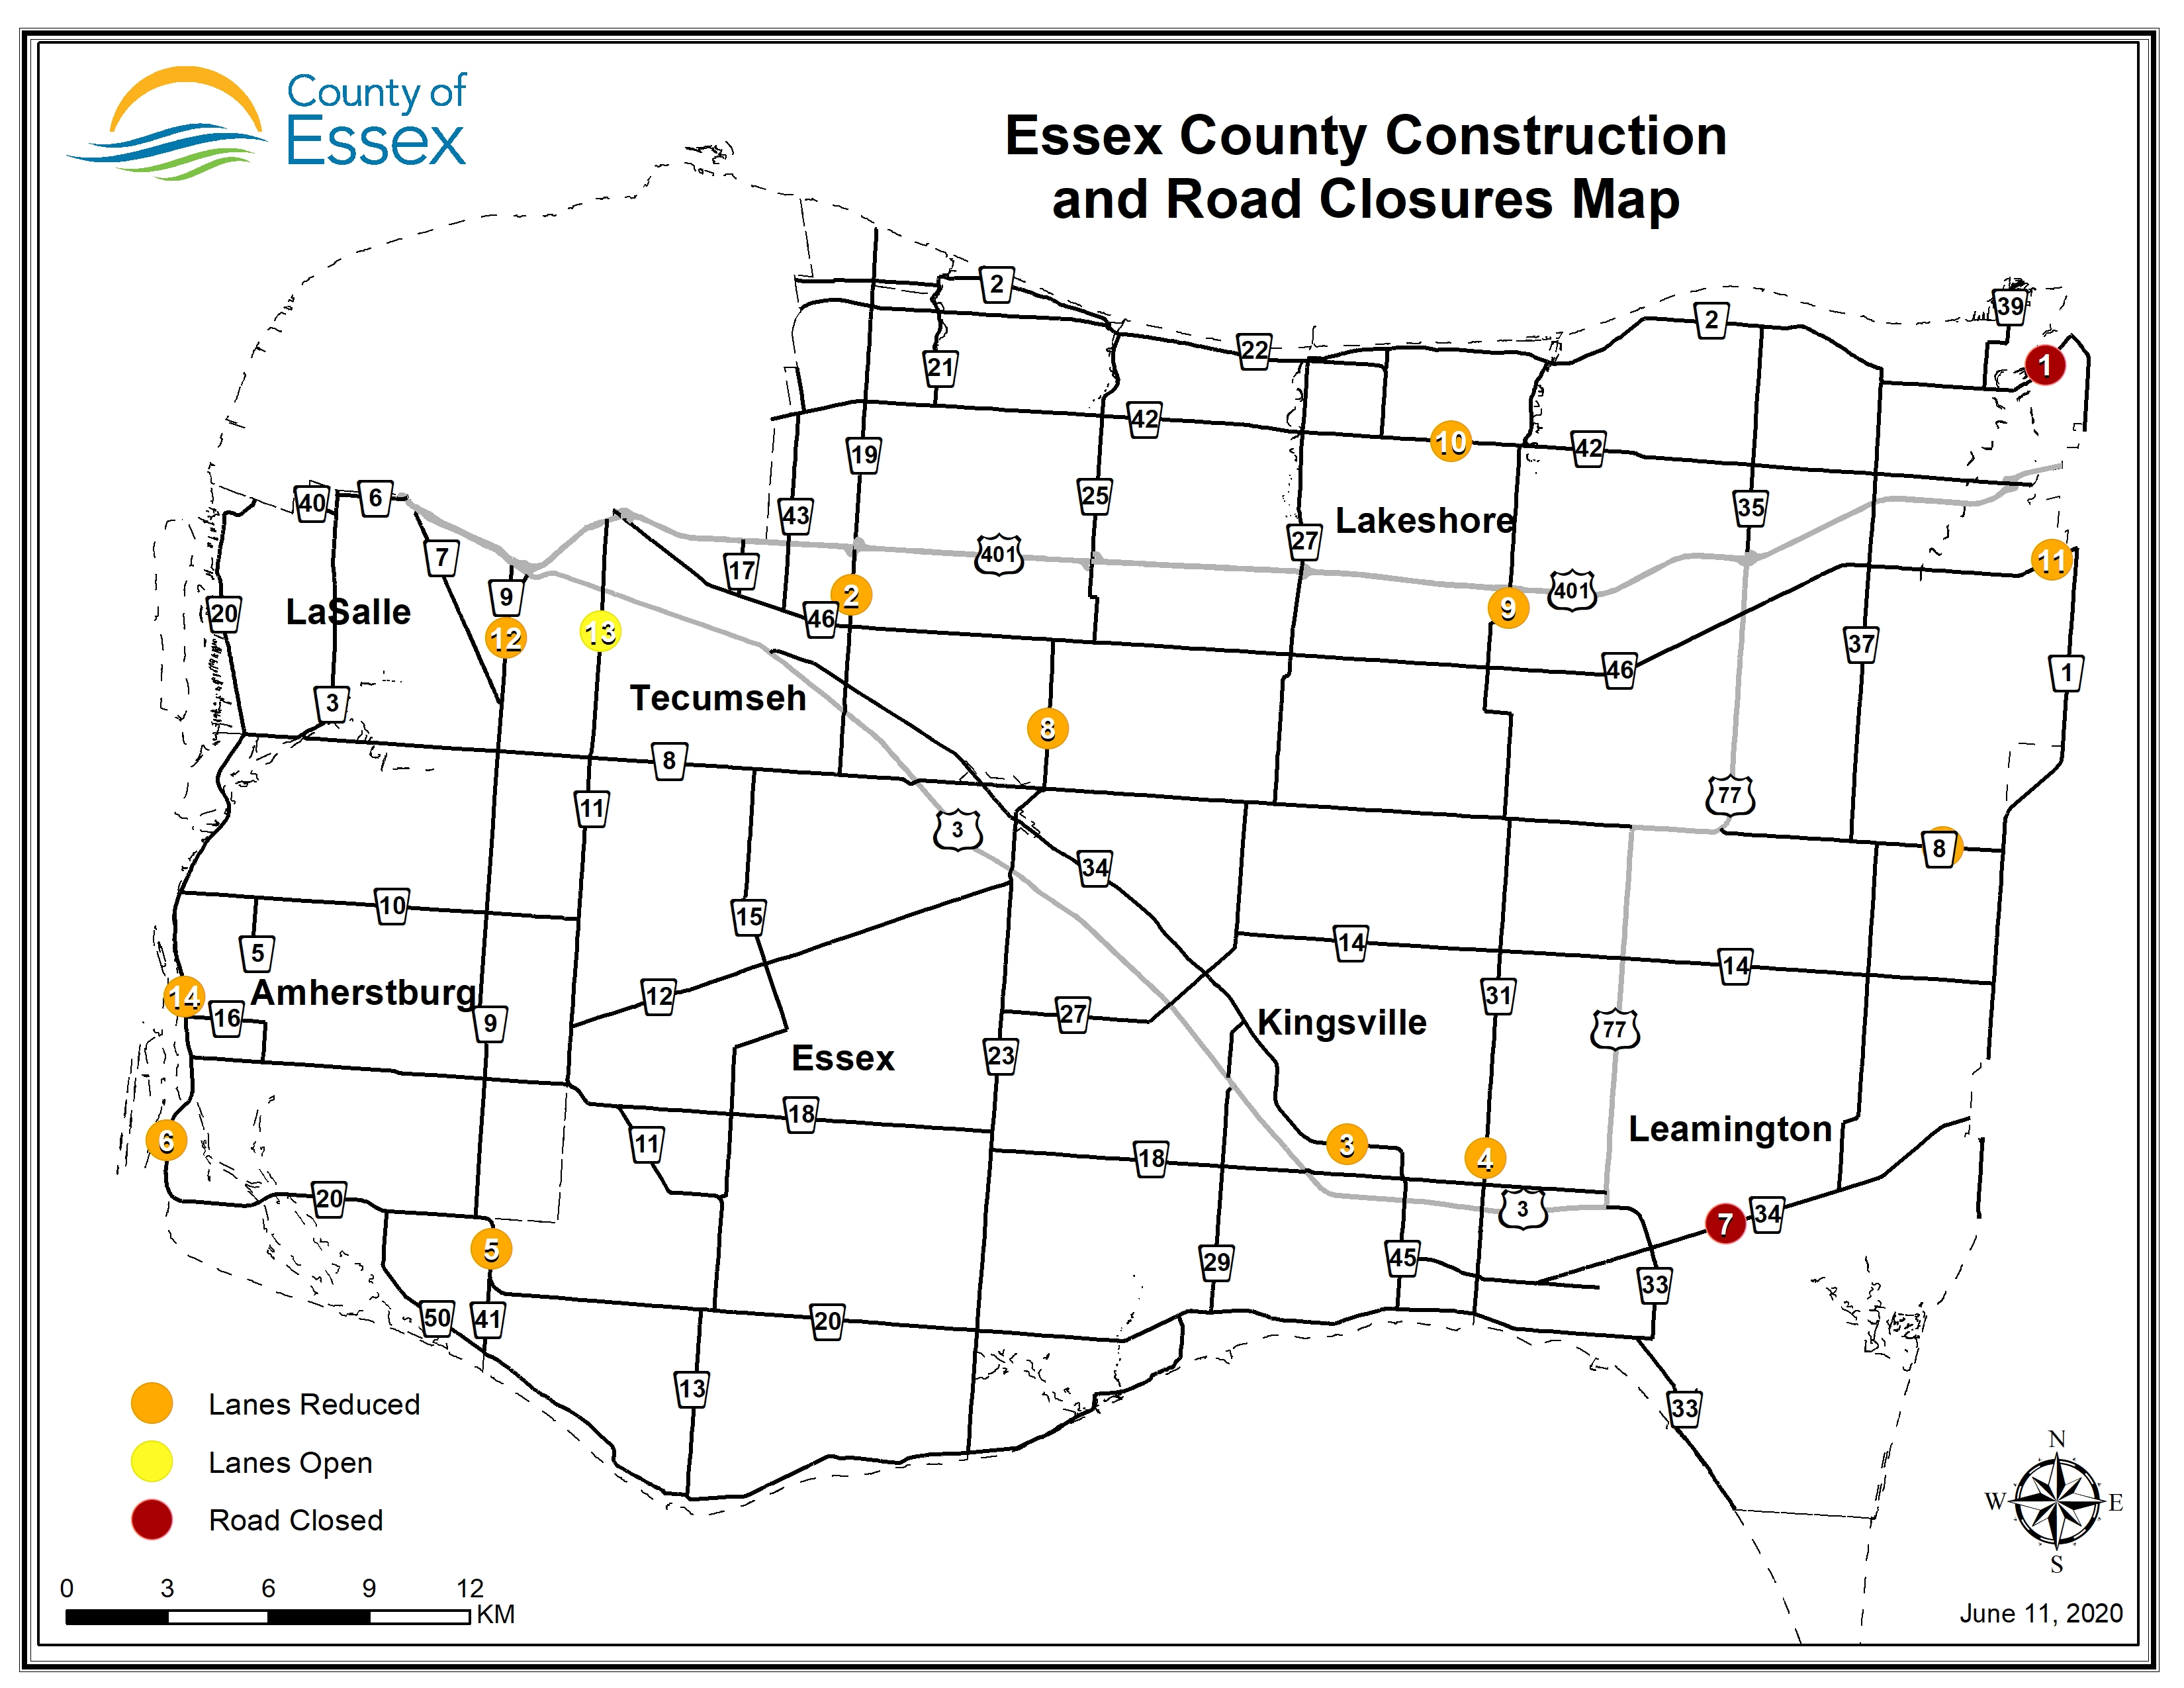 A map of Essex county showing road closures and lane restrictions.